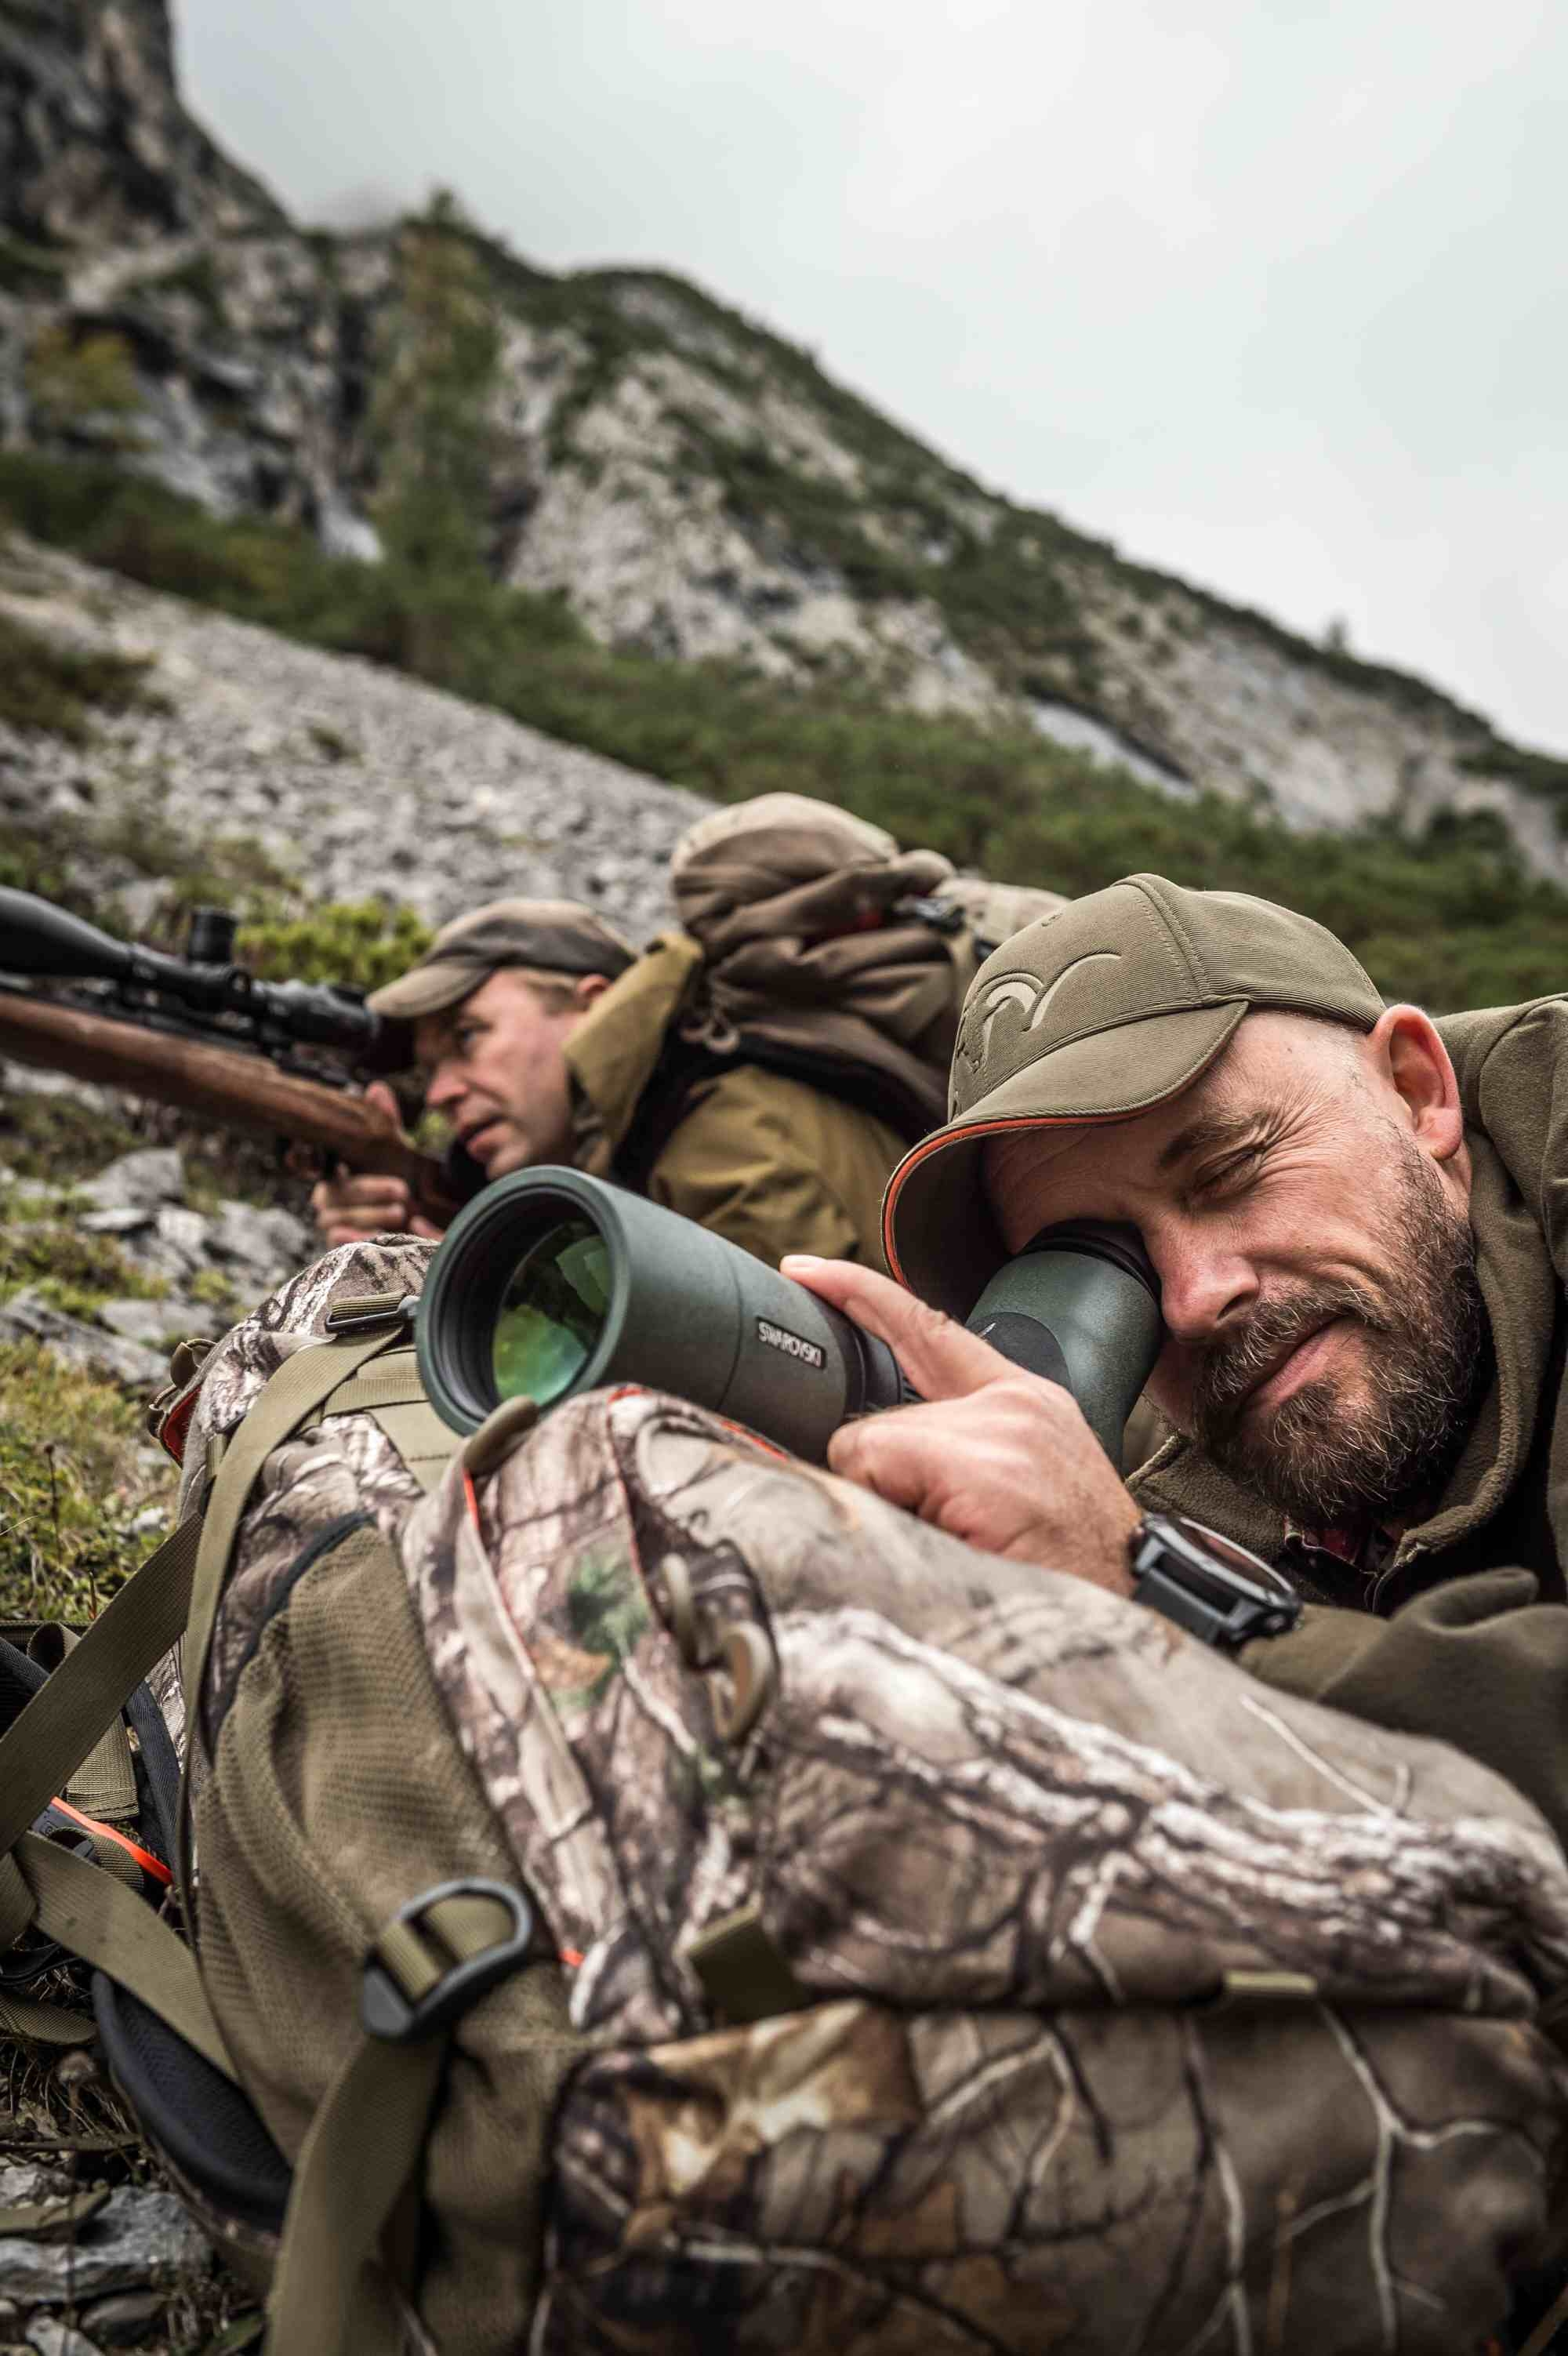 X5i precision hunting riflescope by Swarovski Optik